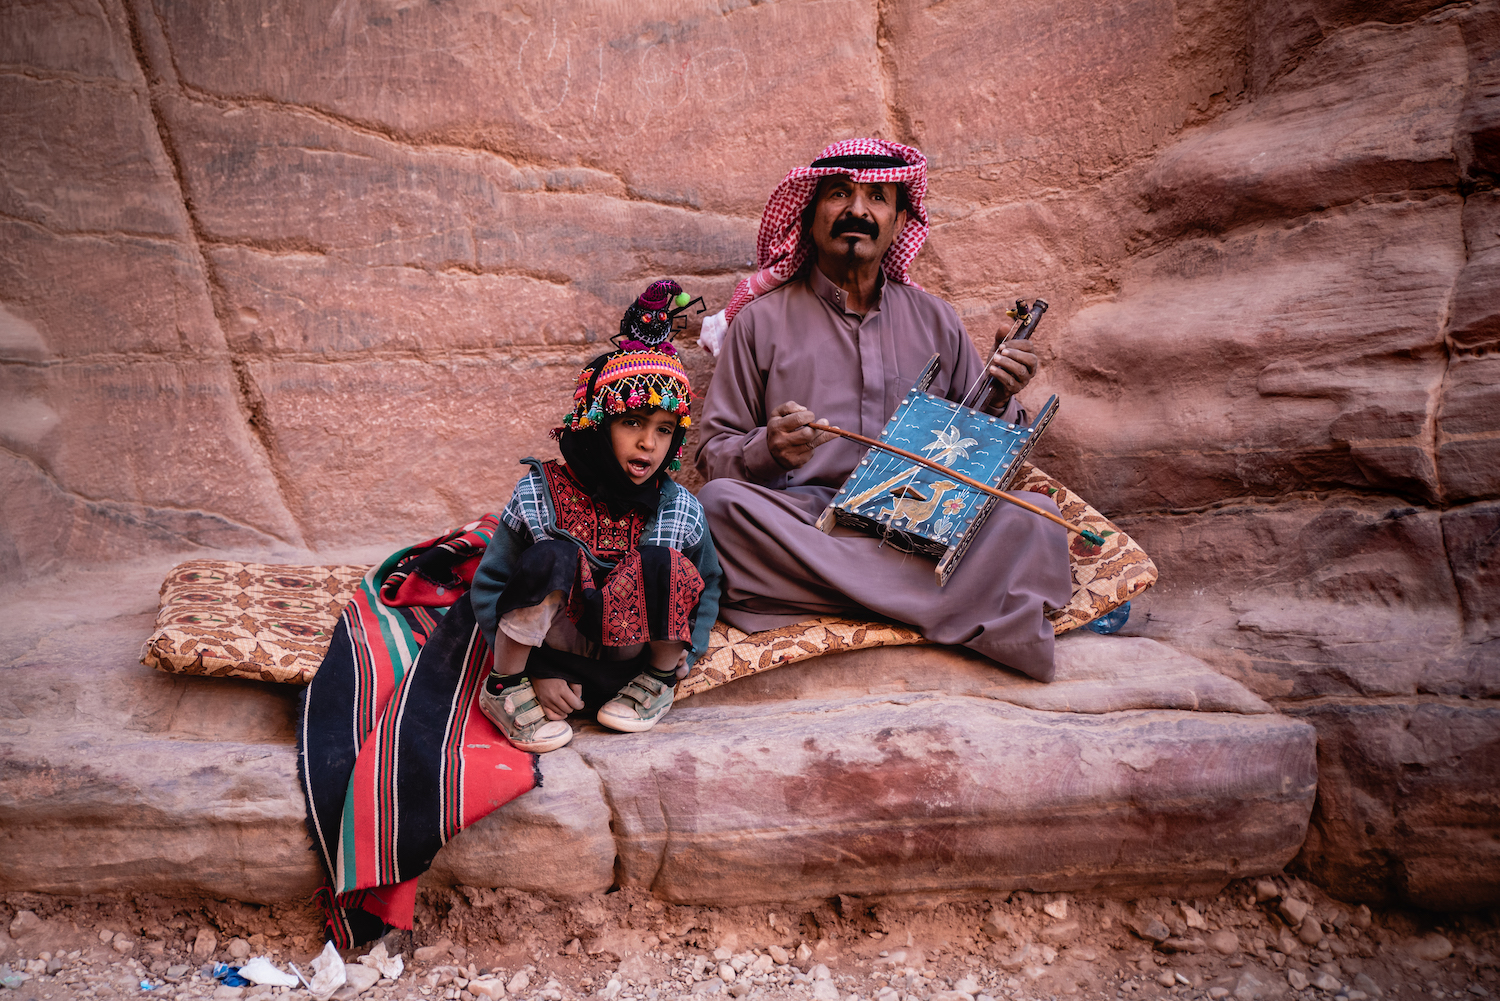 Father and son busking in the cavernous corridors of Petra. Halloween. By Ben Holbrook from DriftwoodJournals.com